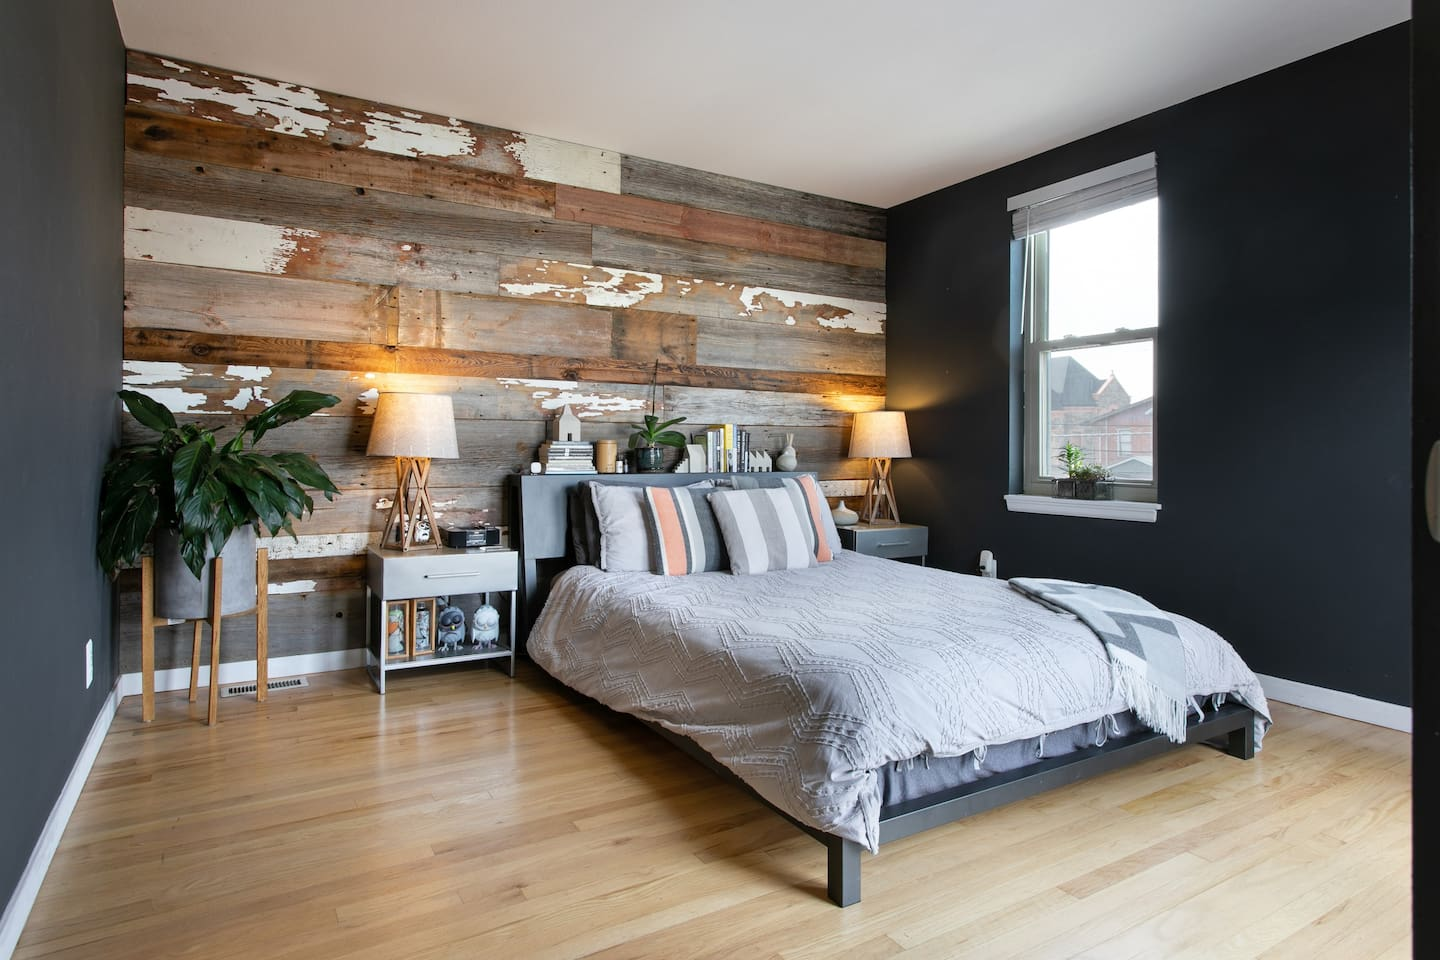 Your master bedroom with plenty of welcoming accents.